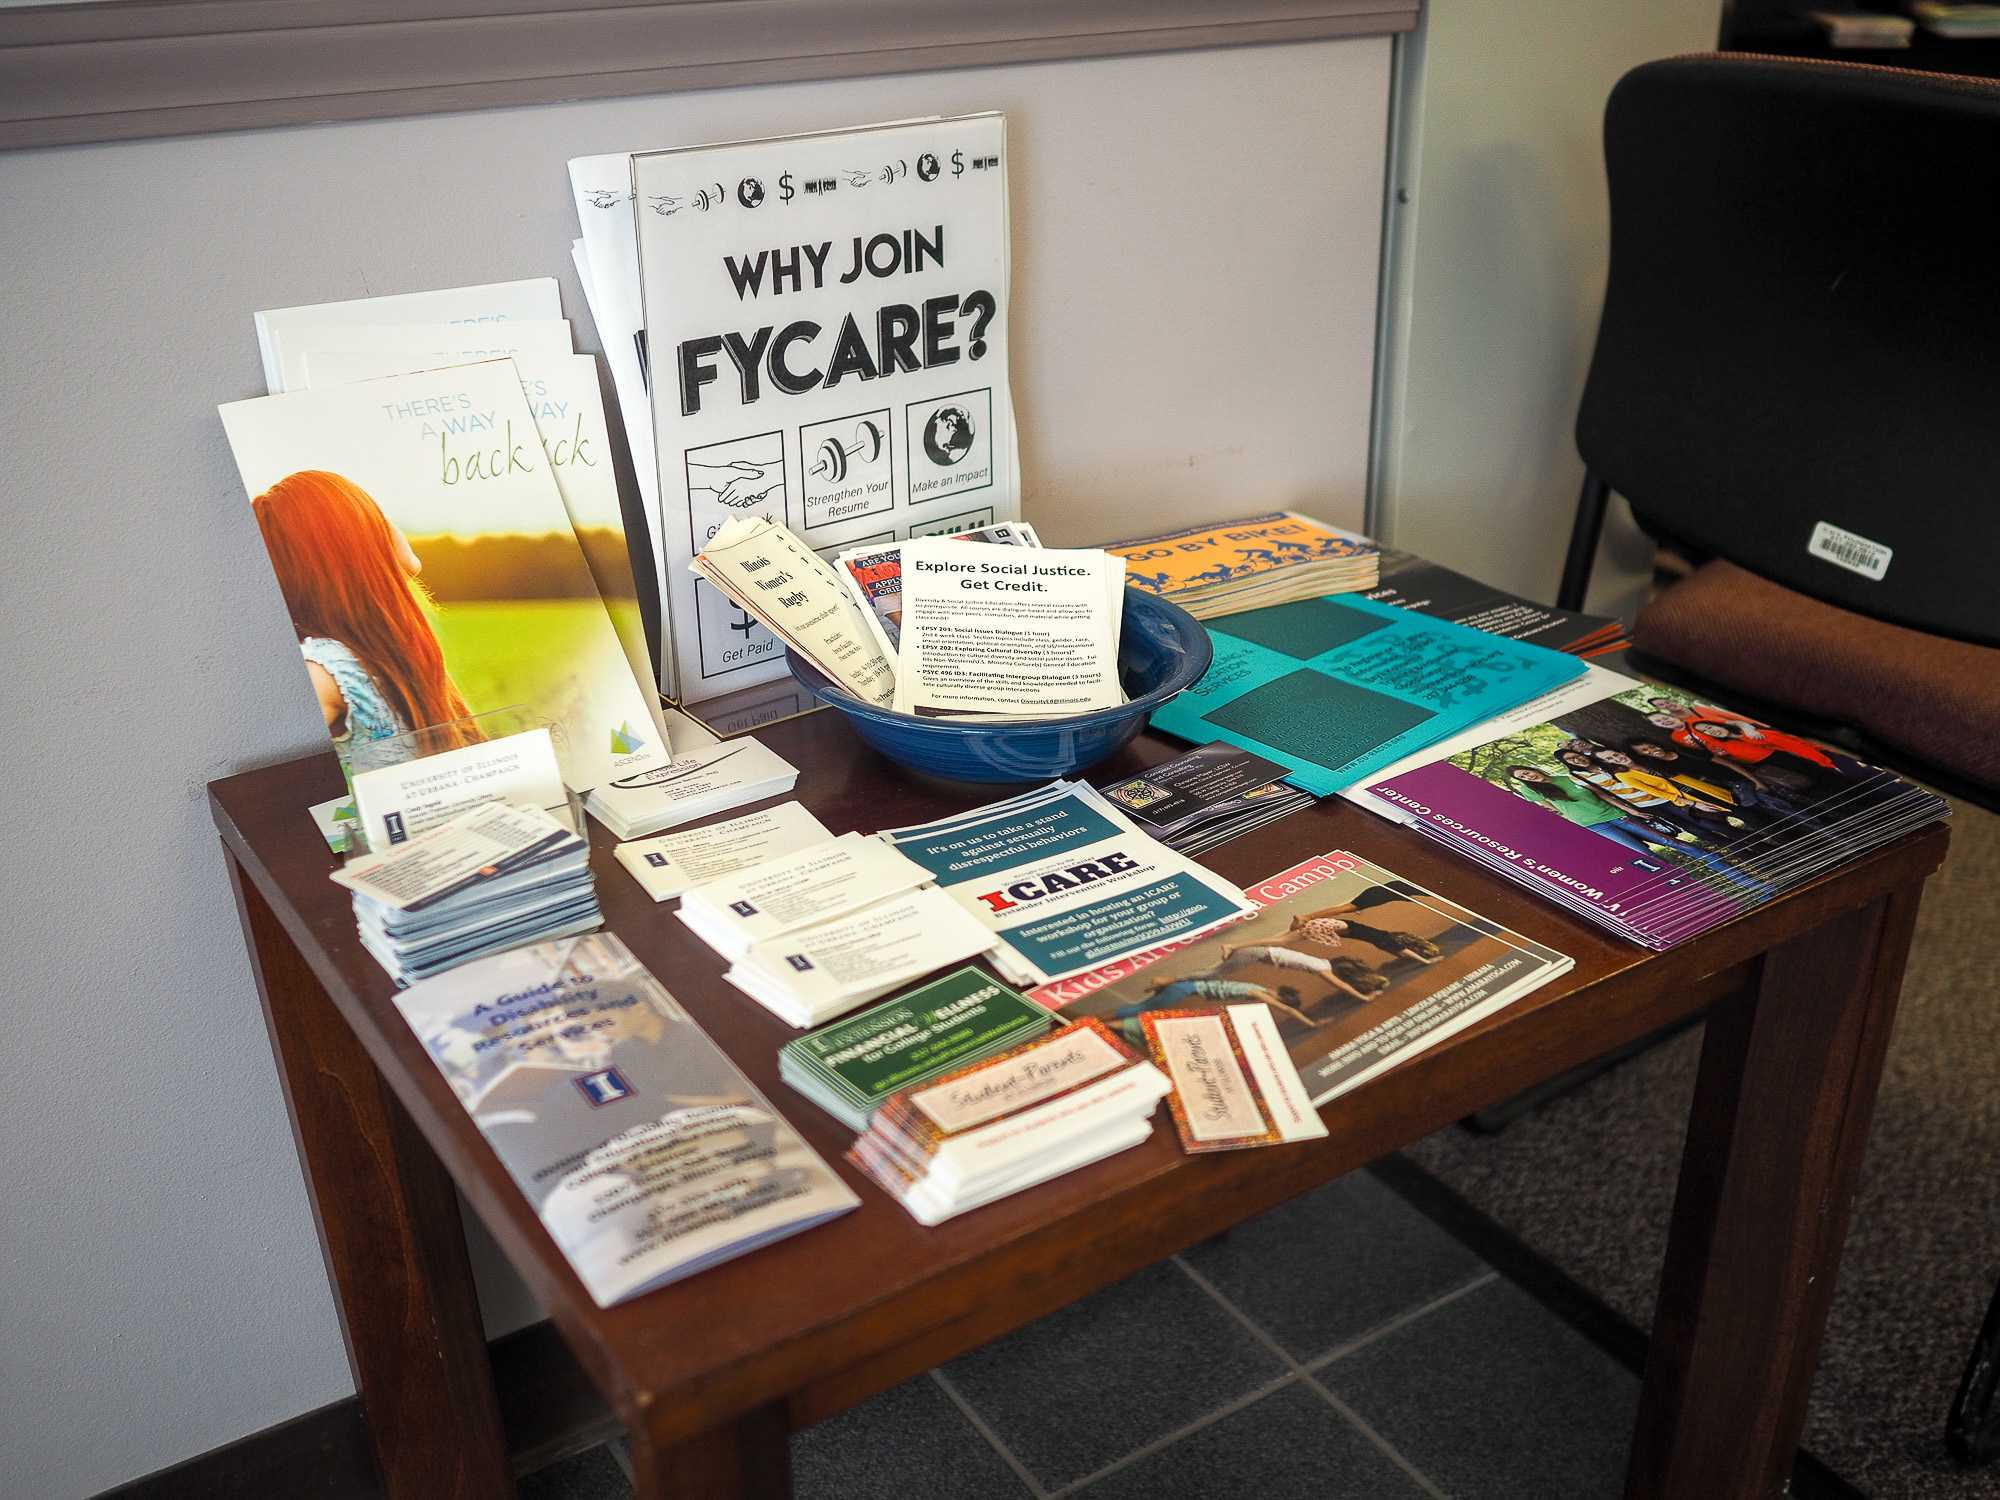 The Women's Resource Center, which sponsors FYCARE, provides a plethora of resources for students.